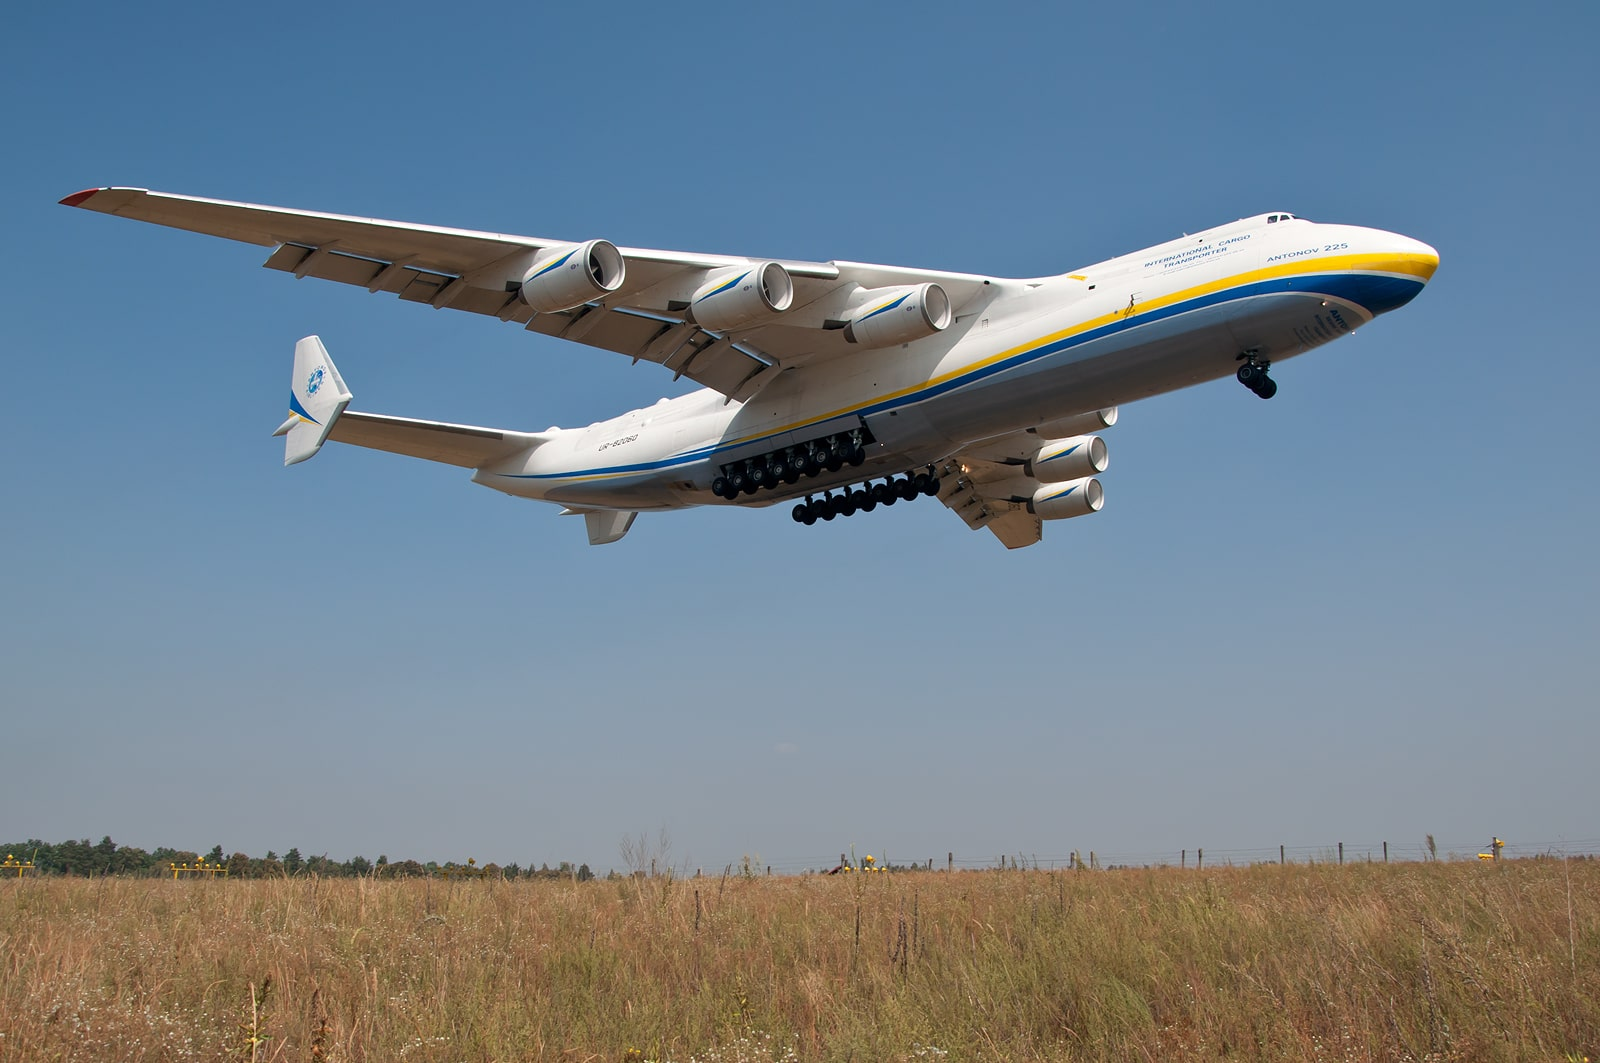 L'antonov AN-225 pour l'expédition de marchandises à l'international